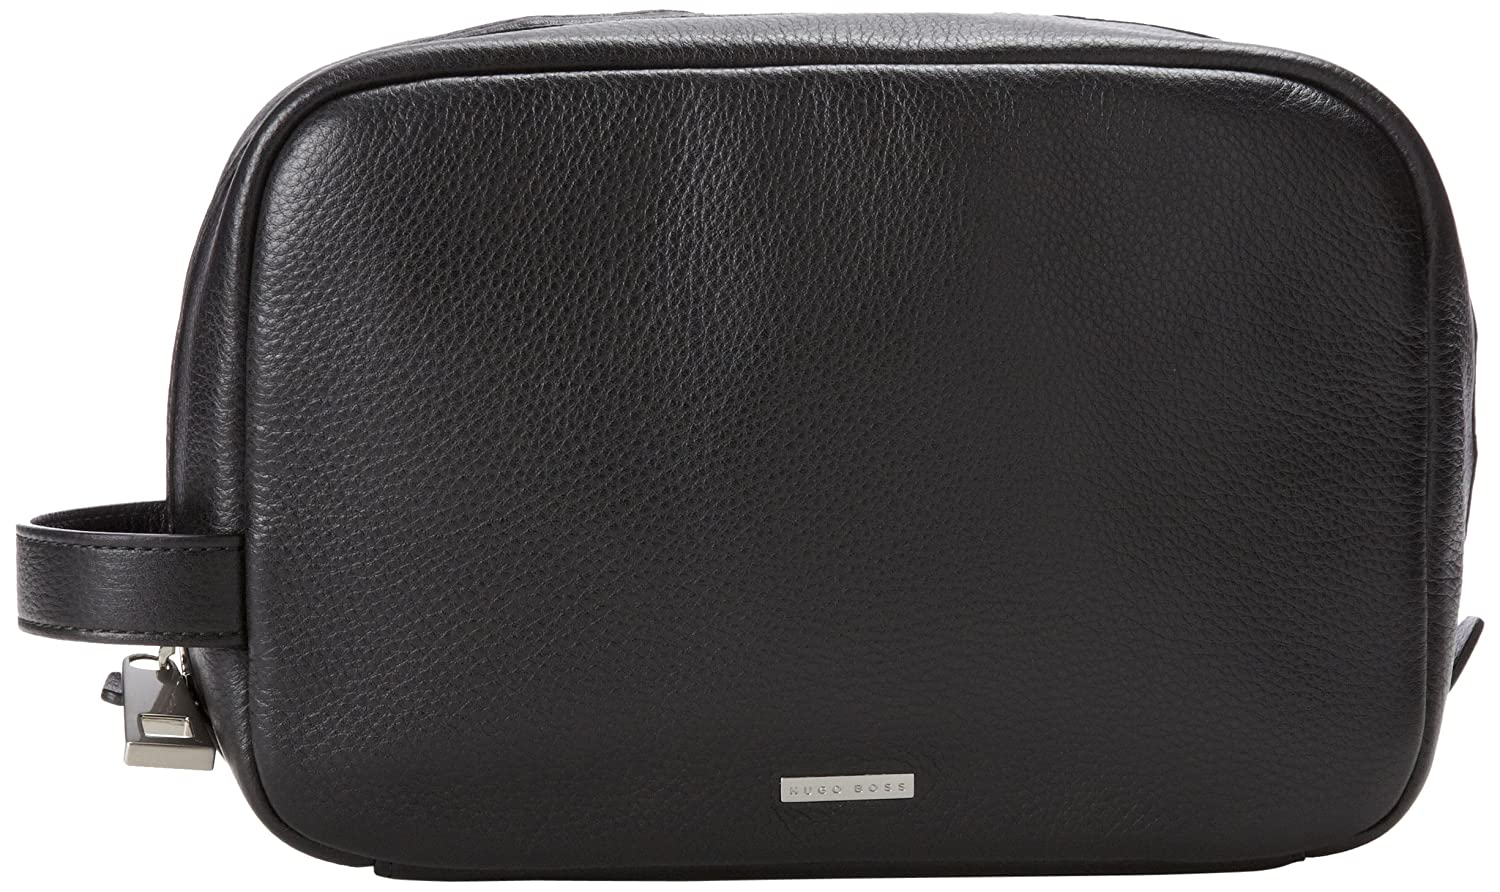 62c856481e1a Amazon.com  BOSS Hugo Boss Men s Bombo Vanity Bag